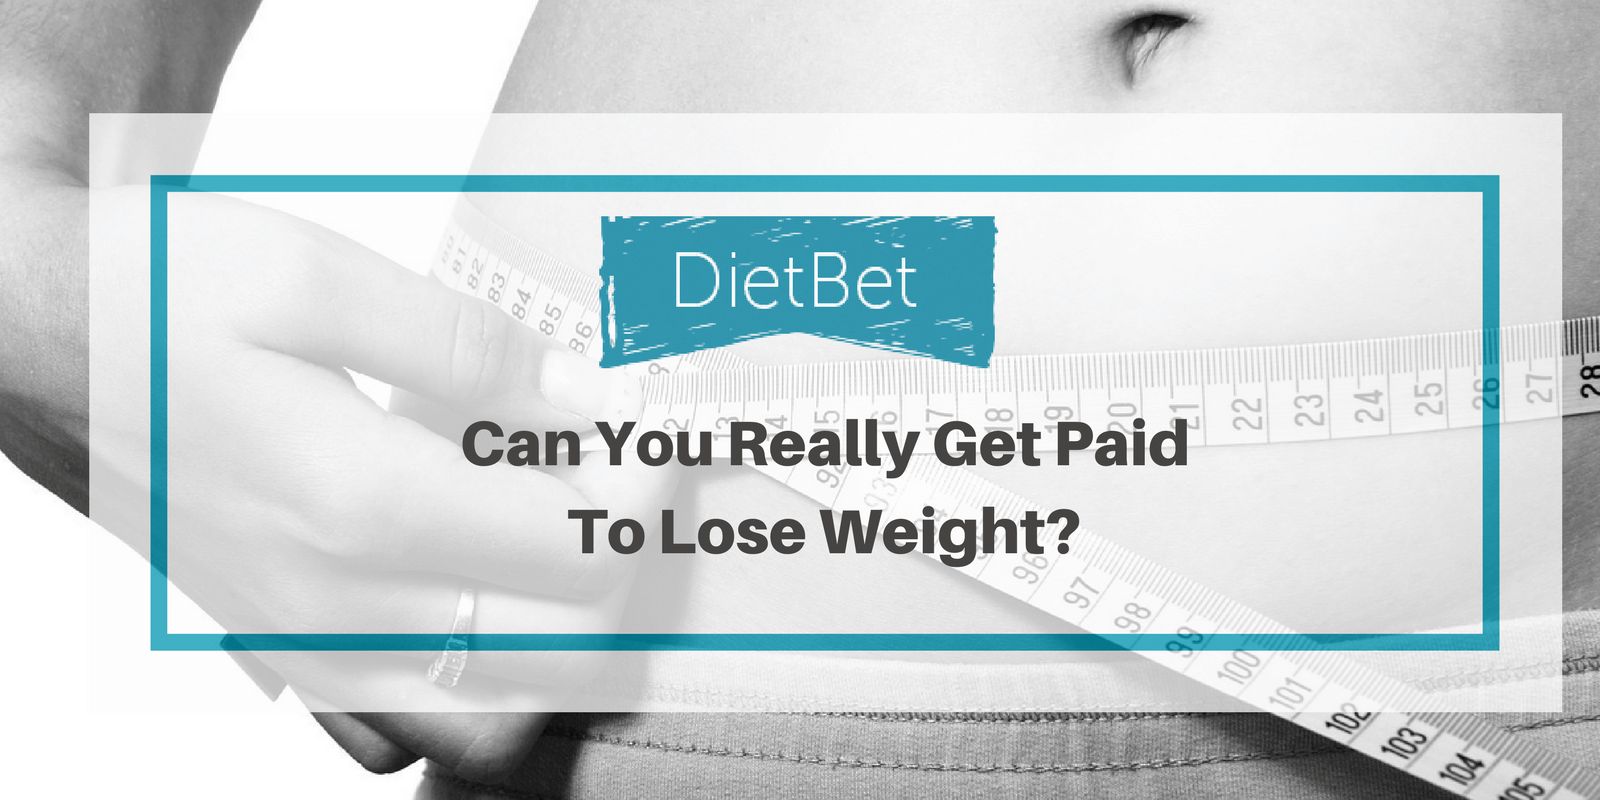 DietBet Review